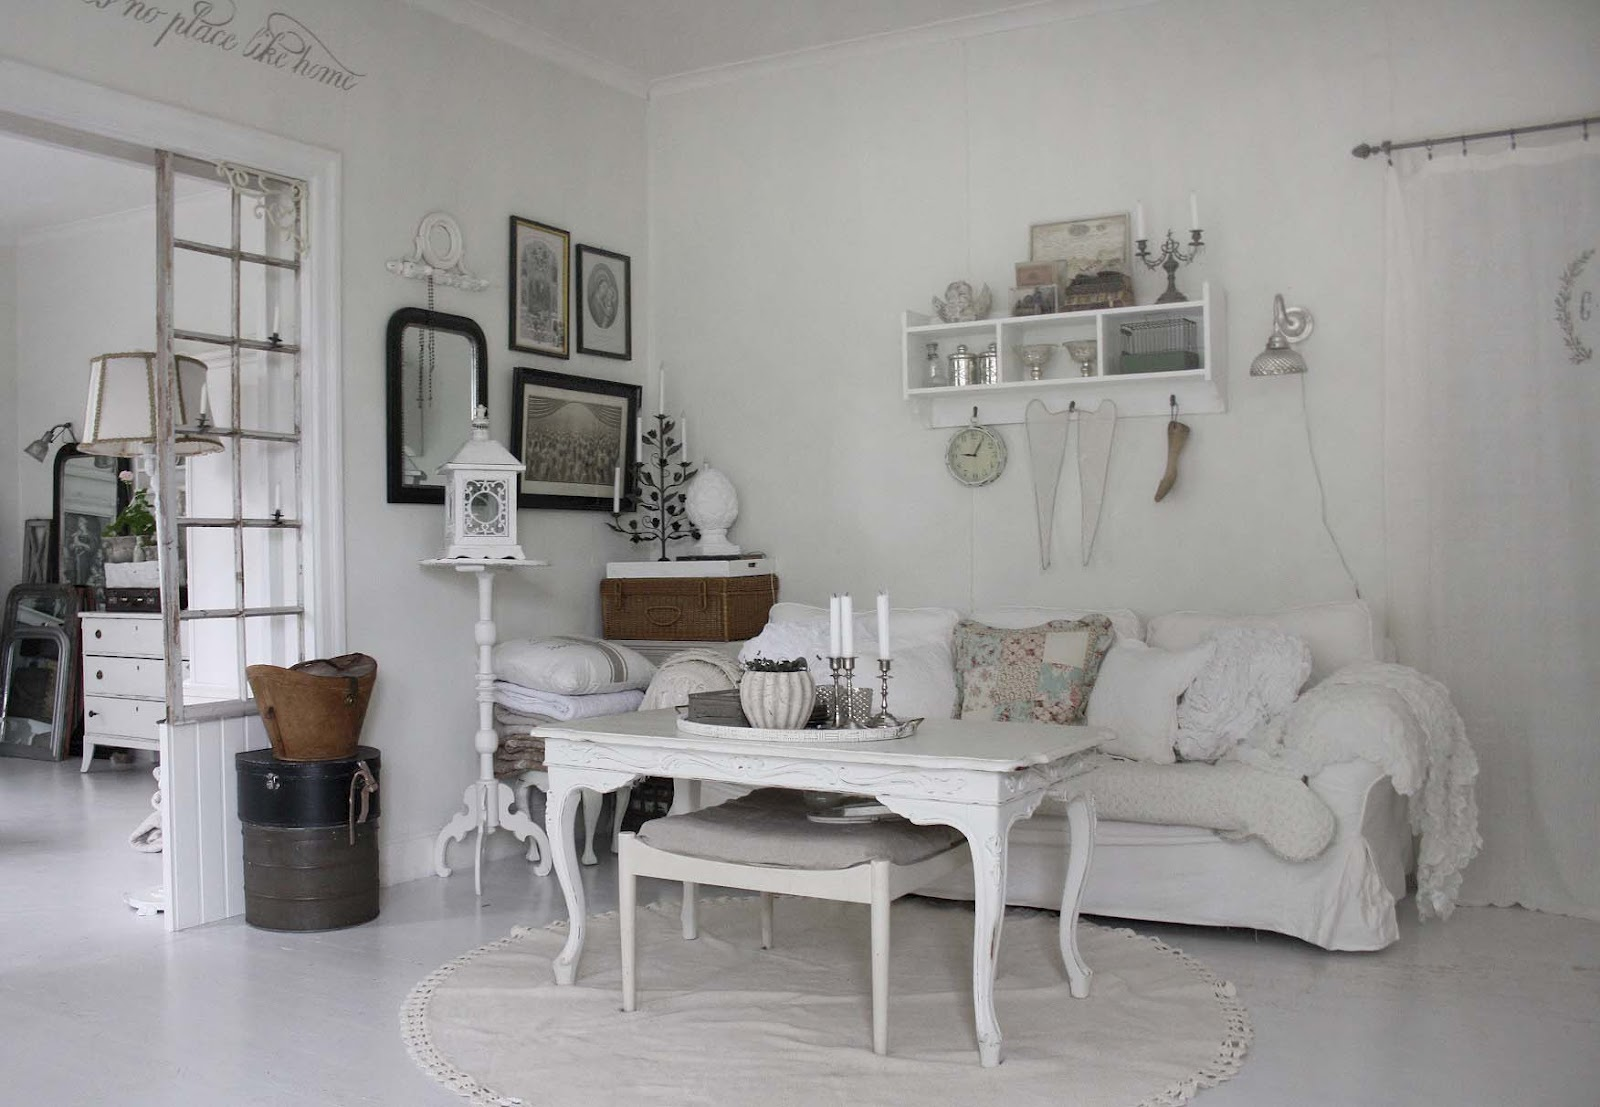 Charmant Shabby Chic Living Room 27 Ideas Via Shabby Chic Girls · Vintage White  Chabby Chic Interior